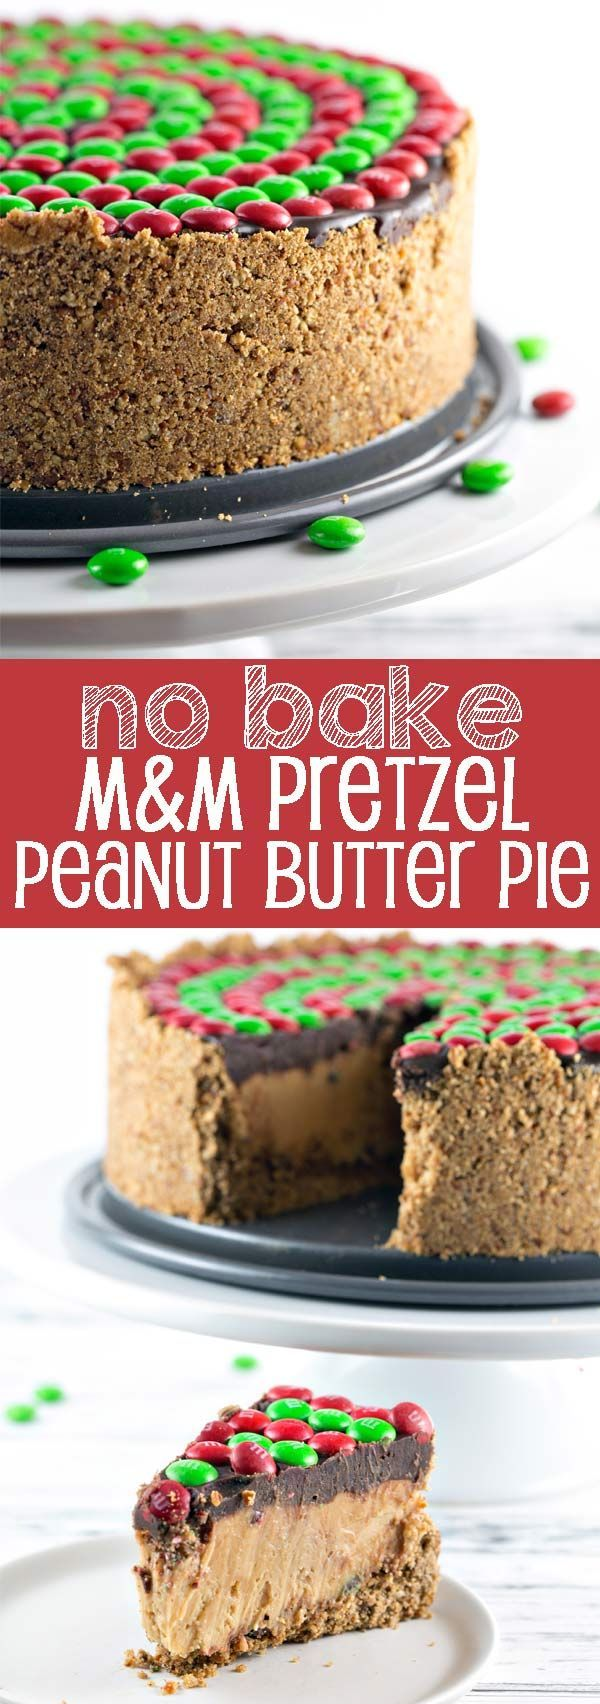 No Bake M&M'S® Pretzel Peanut Butter Pie: salty, crispy pretzel crust, smooth whipped peanut butter filling, rich chocolate ganache, and crunchy M&Ms combine into the perfect easy pie. Perfect for holiday entertaining! {Bunsen Burner Bakery} #ad #BakeInTheFun @walmart  #milkdrive @milklife